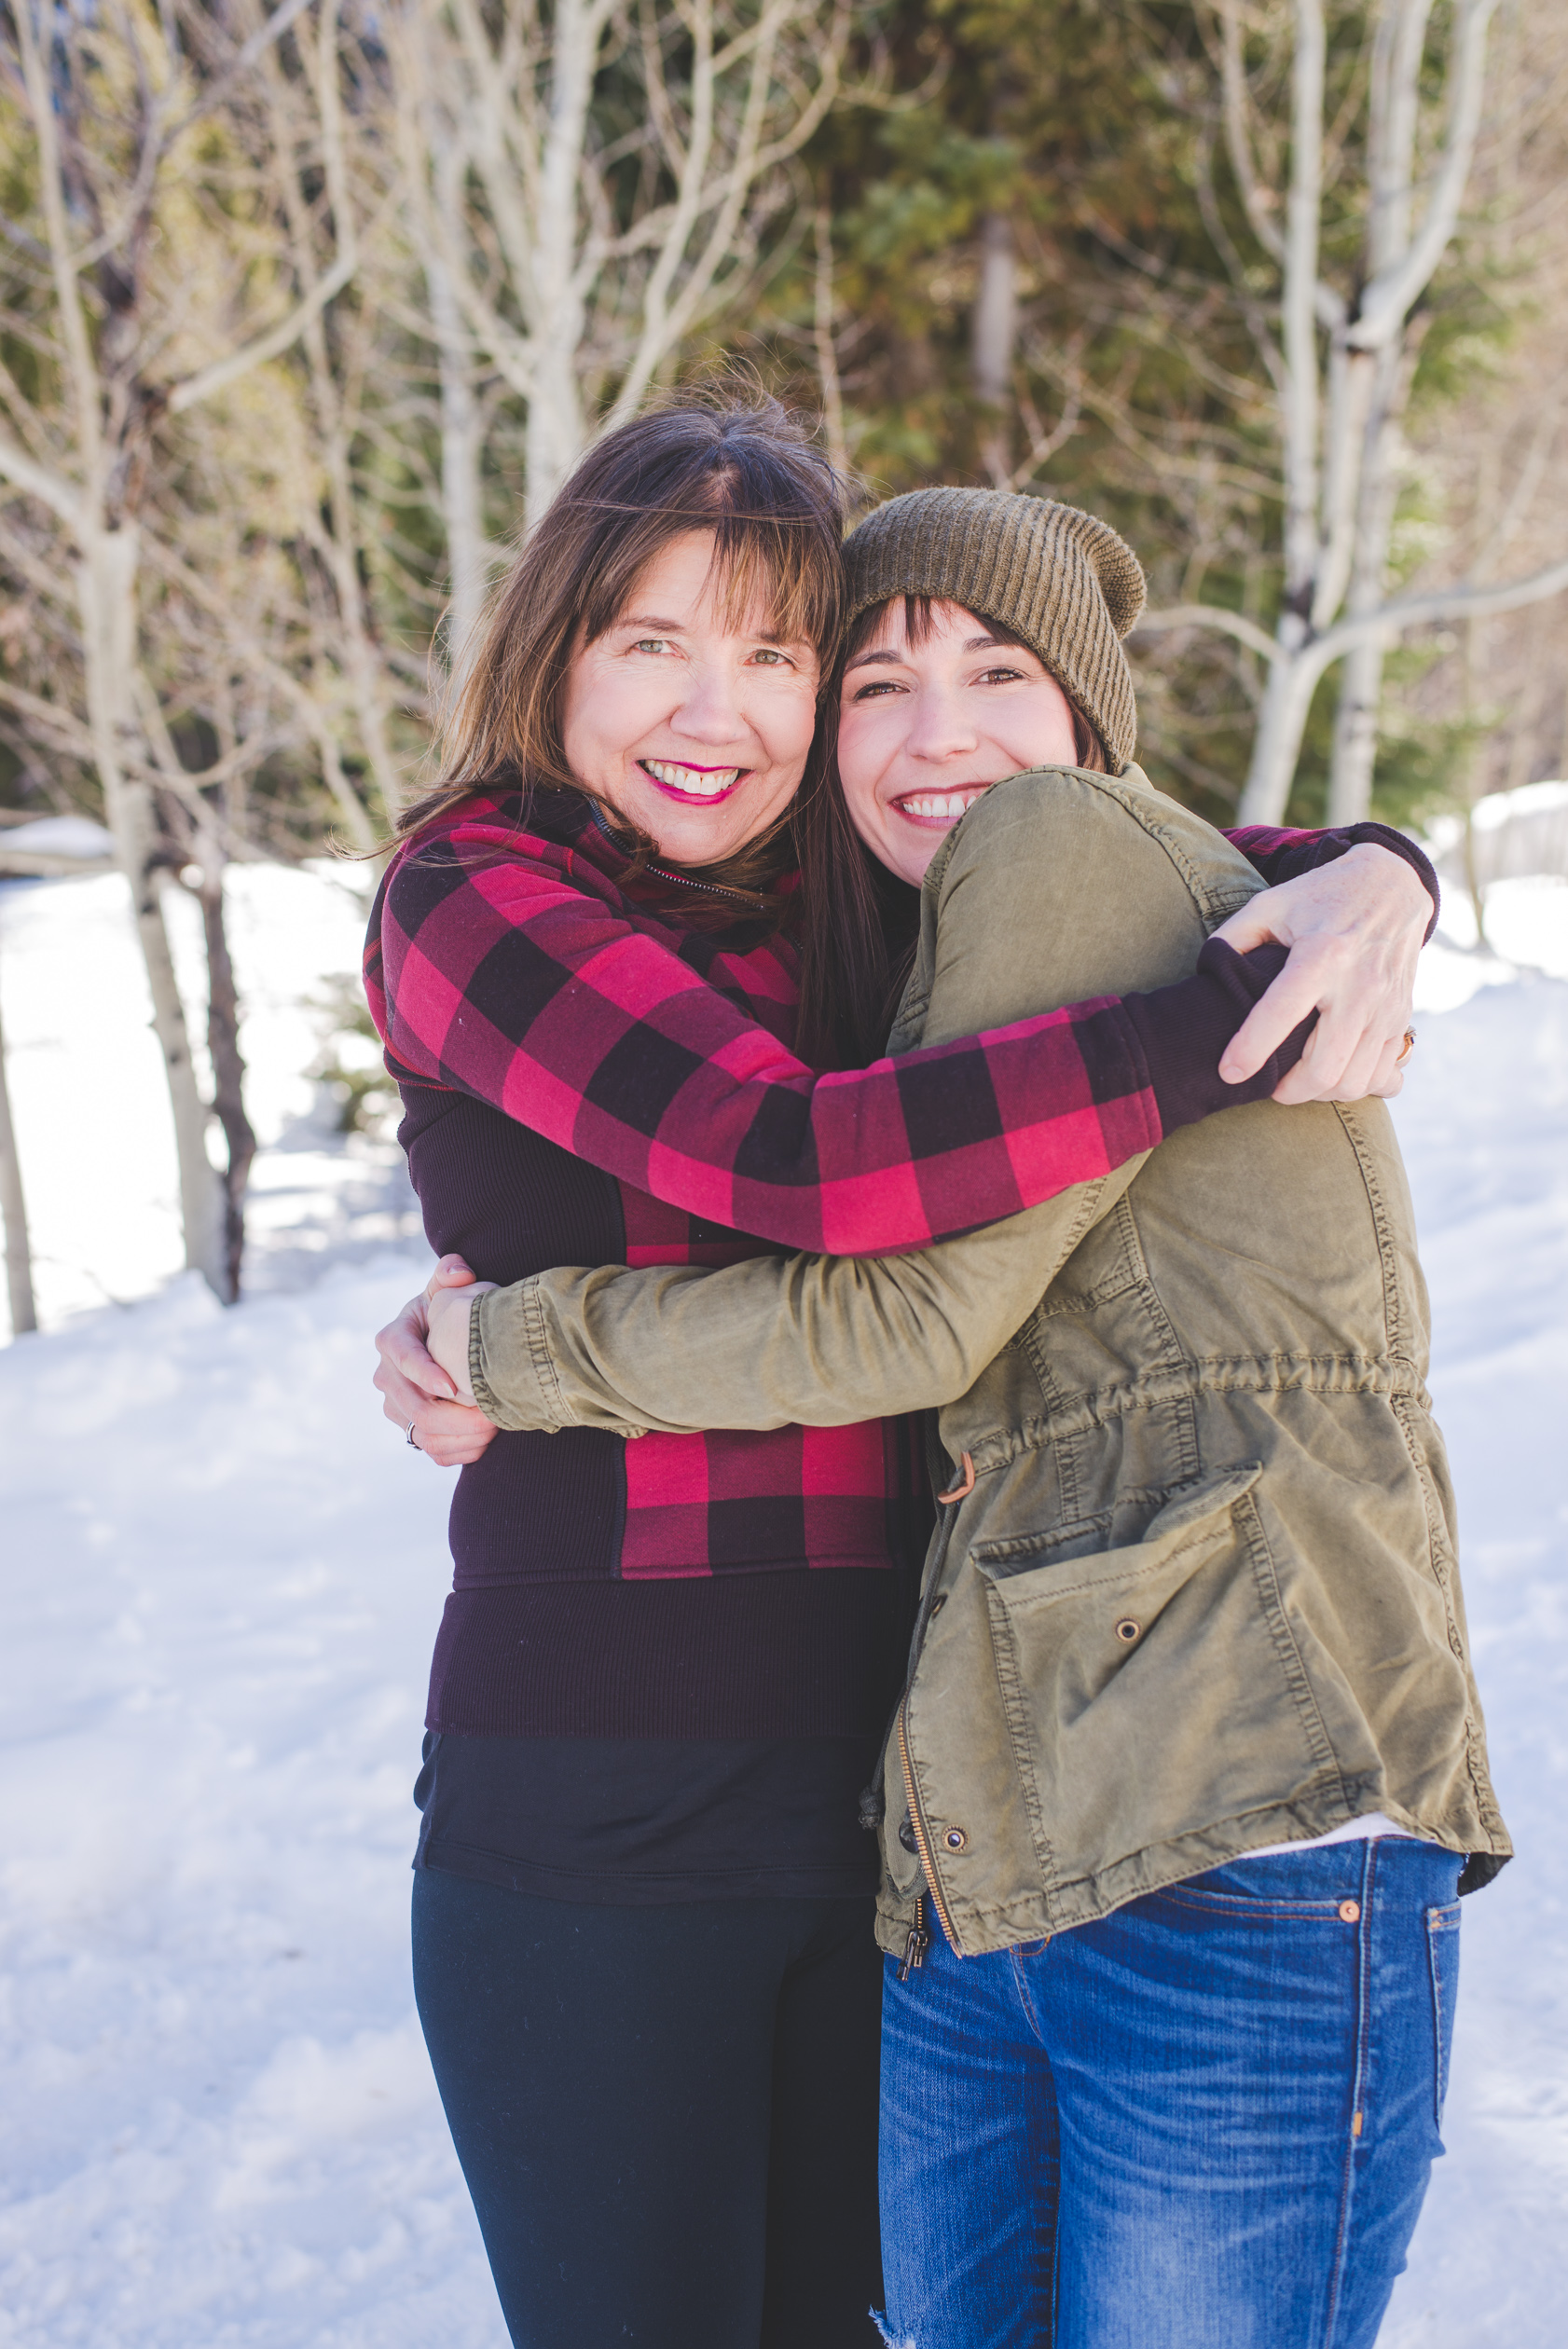 like mother, like daughter - these two got extra close during our family photo shoot in Frisco Colorado this winter!